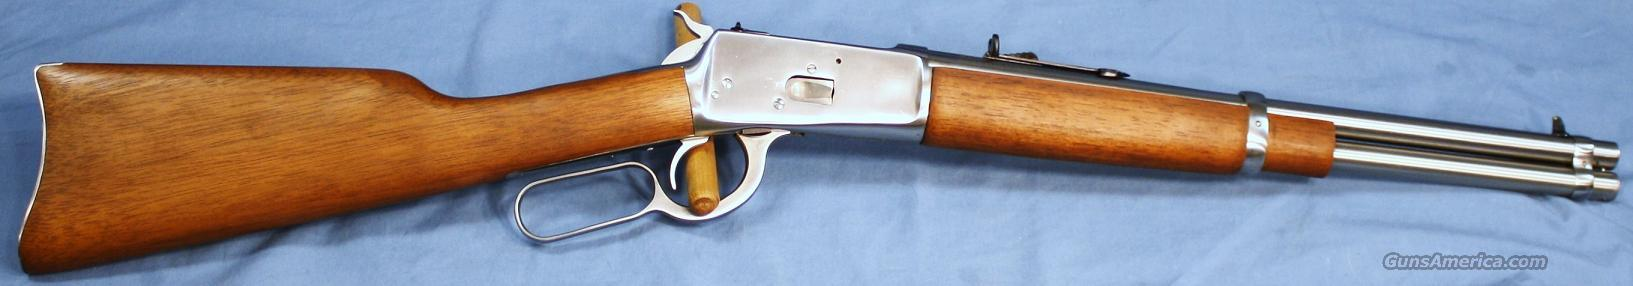 Rossi Model 92 Trapper Stainless Lever Action Rifle .44 Magnum  Guns > Rifles > Rossi Rifles > Cowboy